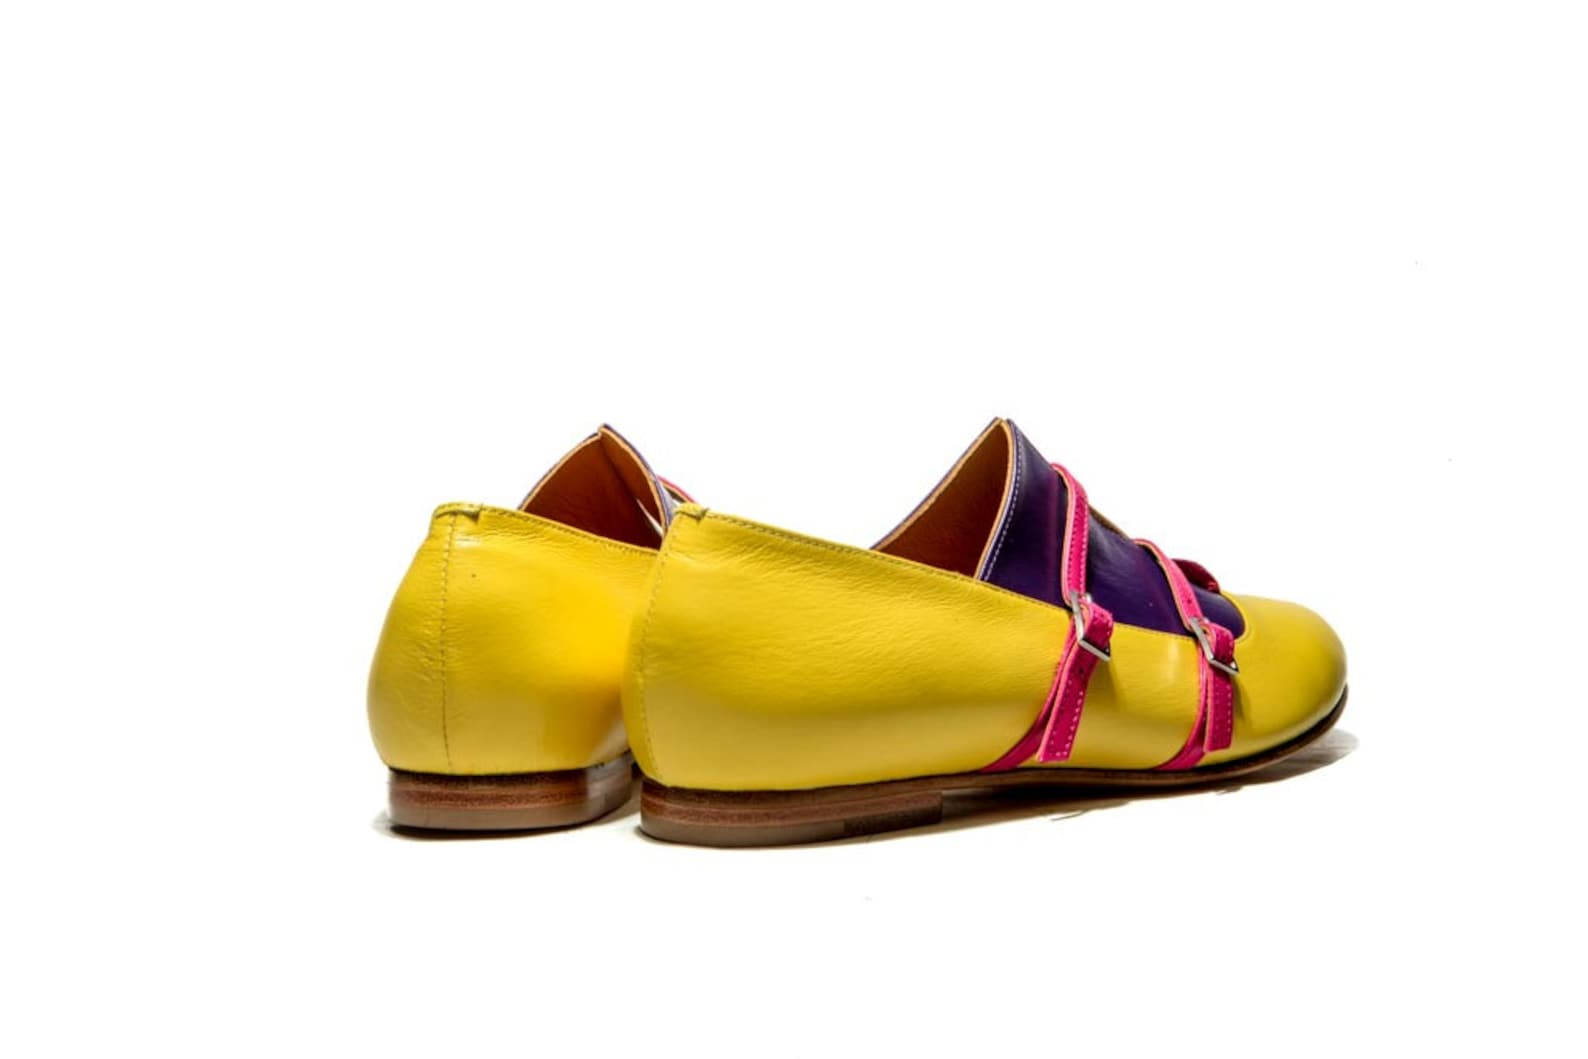 handmade ballet flats/ women's oxford shoes/ women's monk shoes/ leather flats/ everyday shoes/ buckle up shoes/ yellow